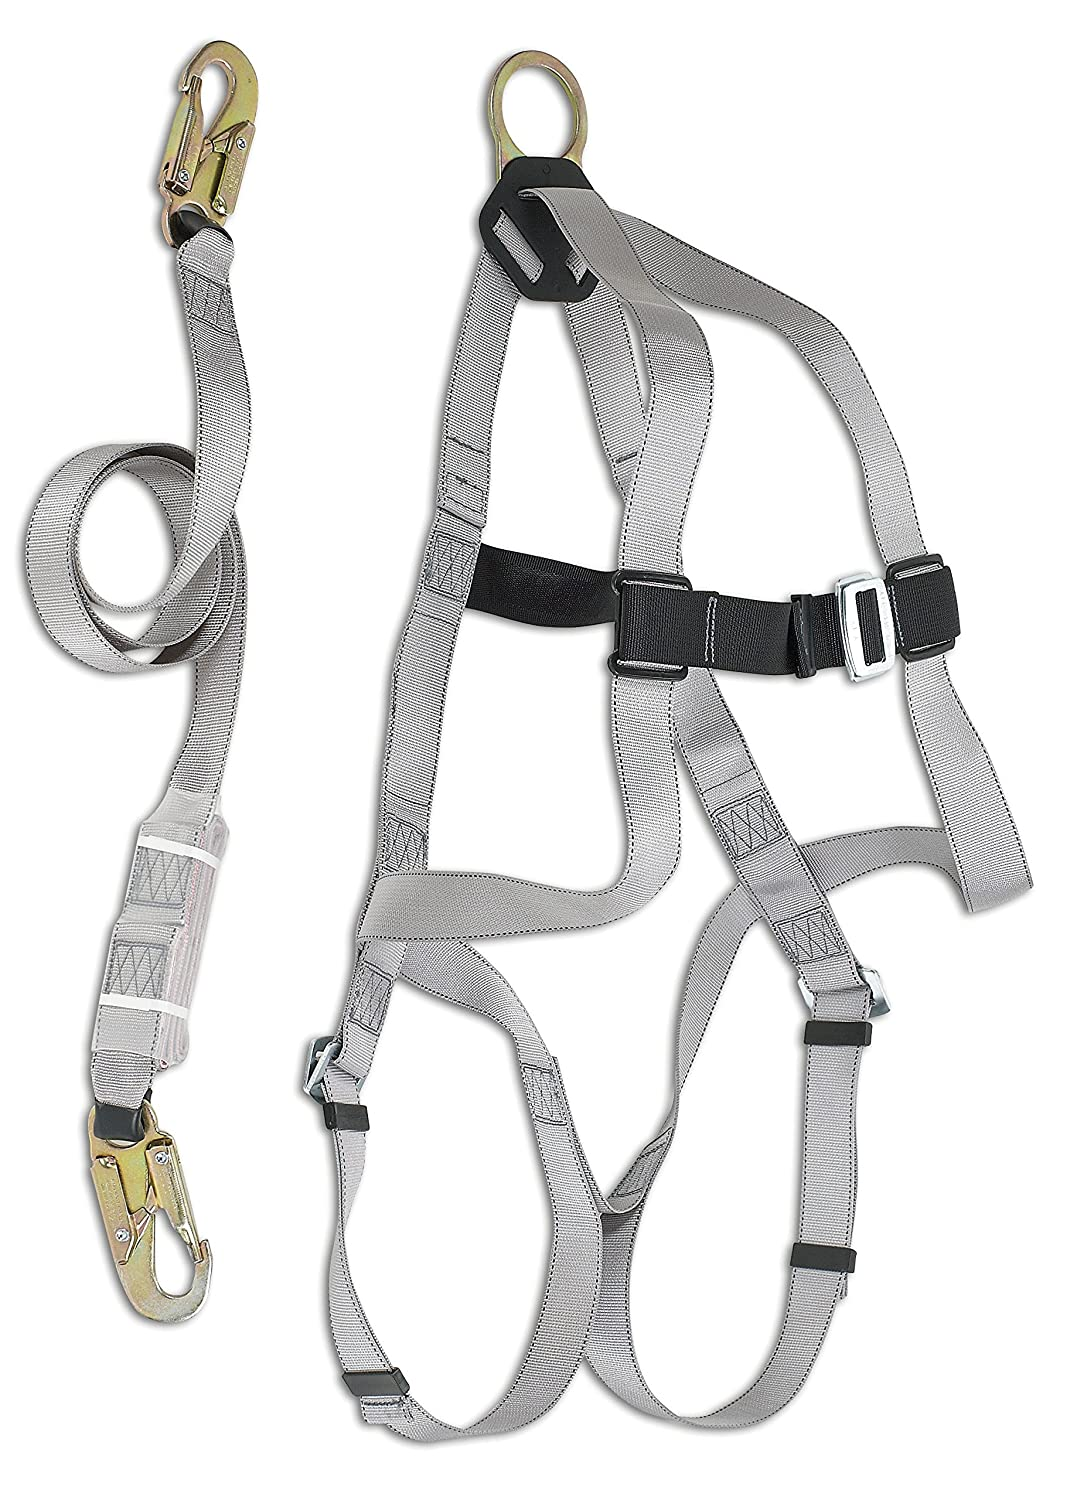 Dynamic Safety FPKIT02/6 Basic B-Compliant Kit: 1 FP4001D Harness with FP65822/6 Lanyard, 1 FP1002 Equipment Bag, 6' Long